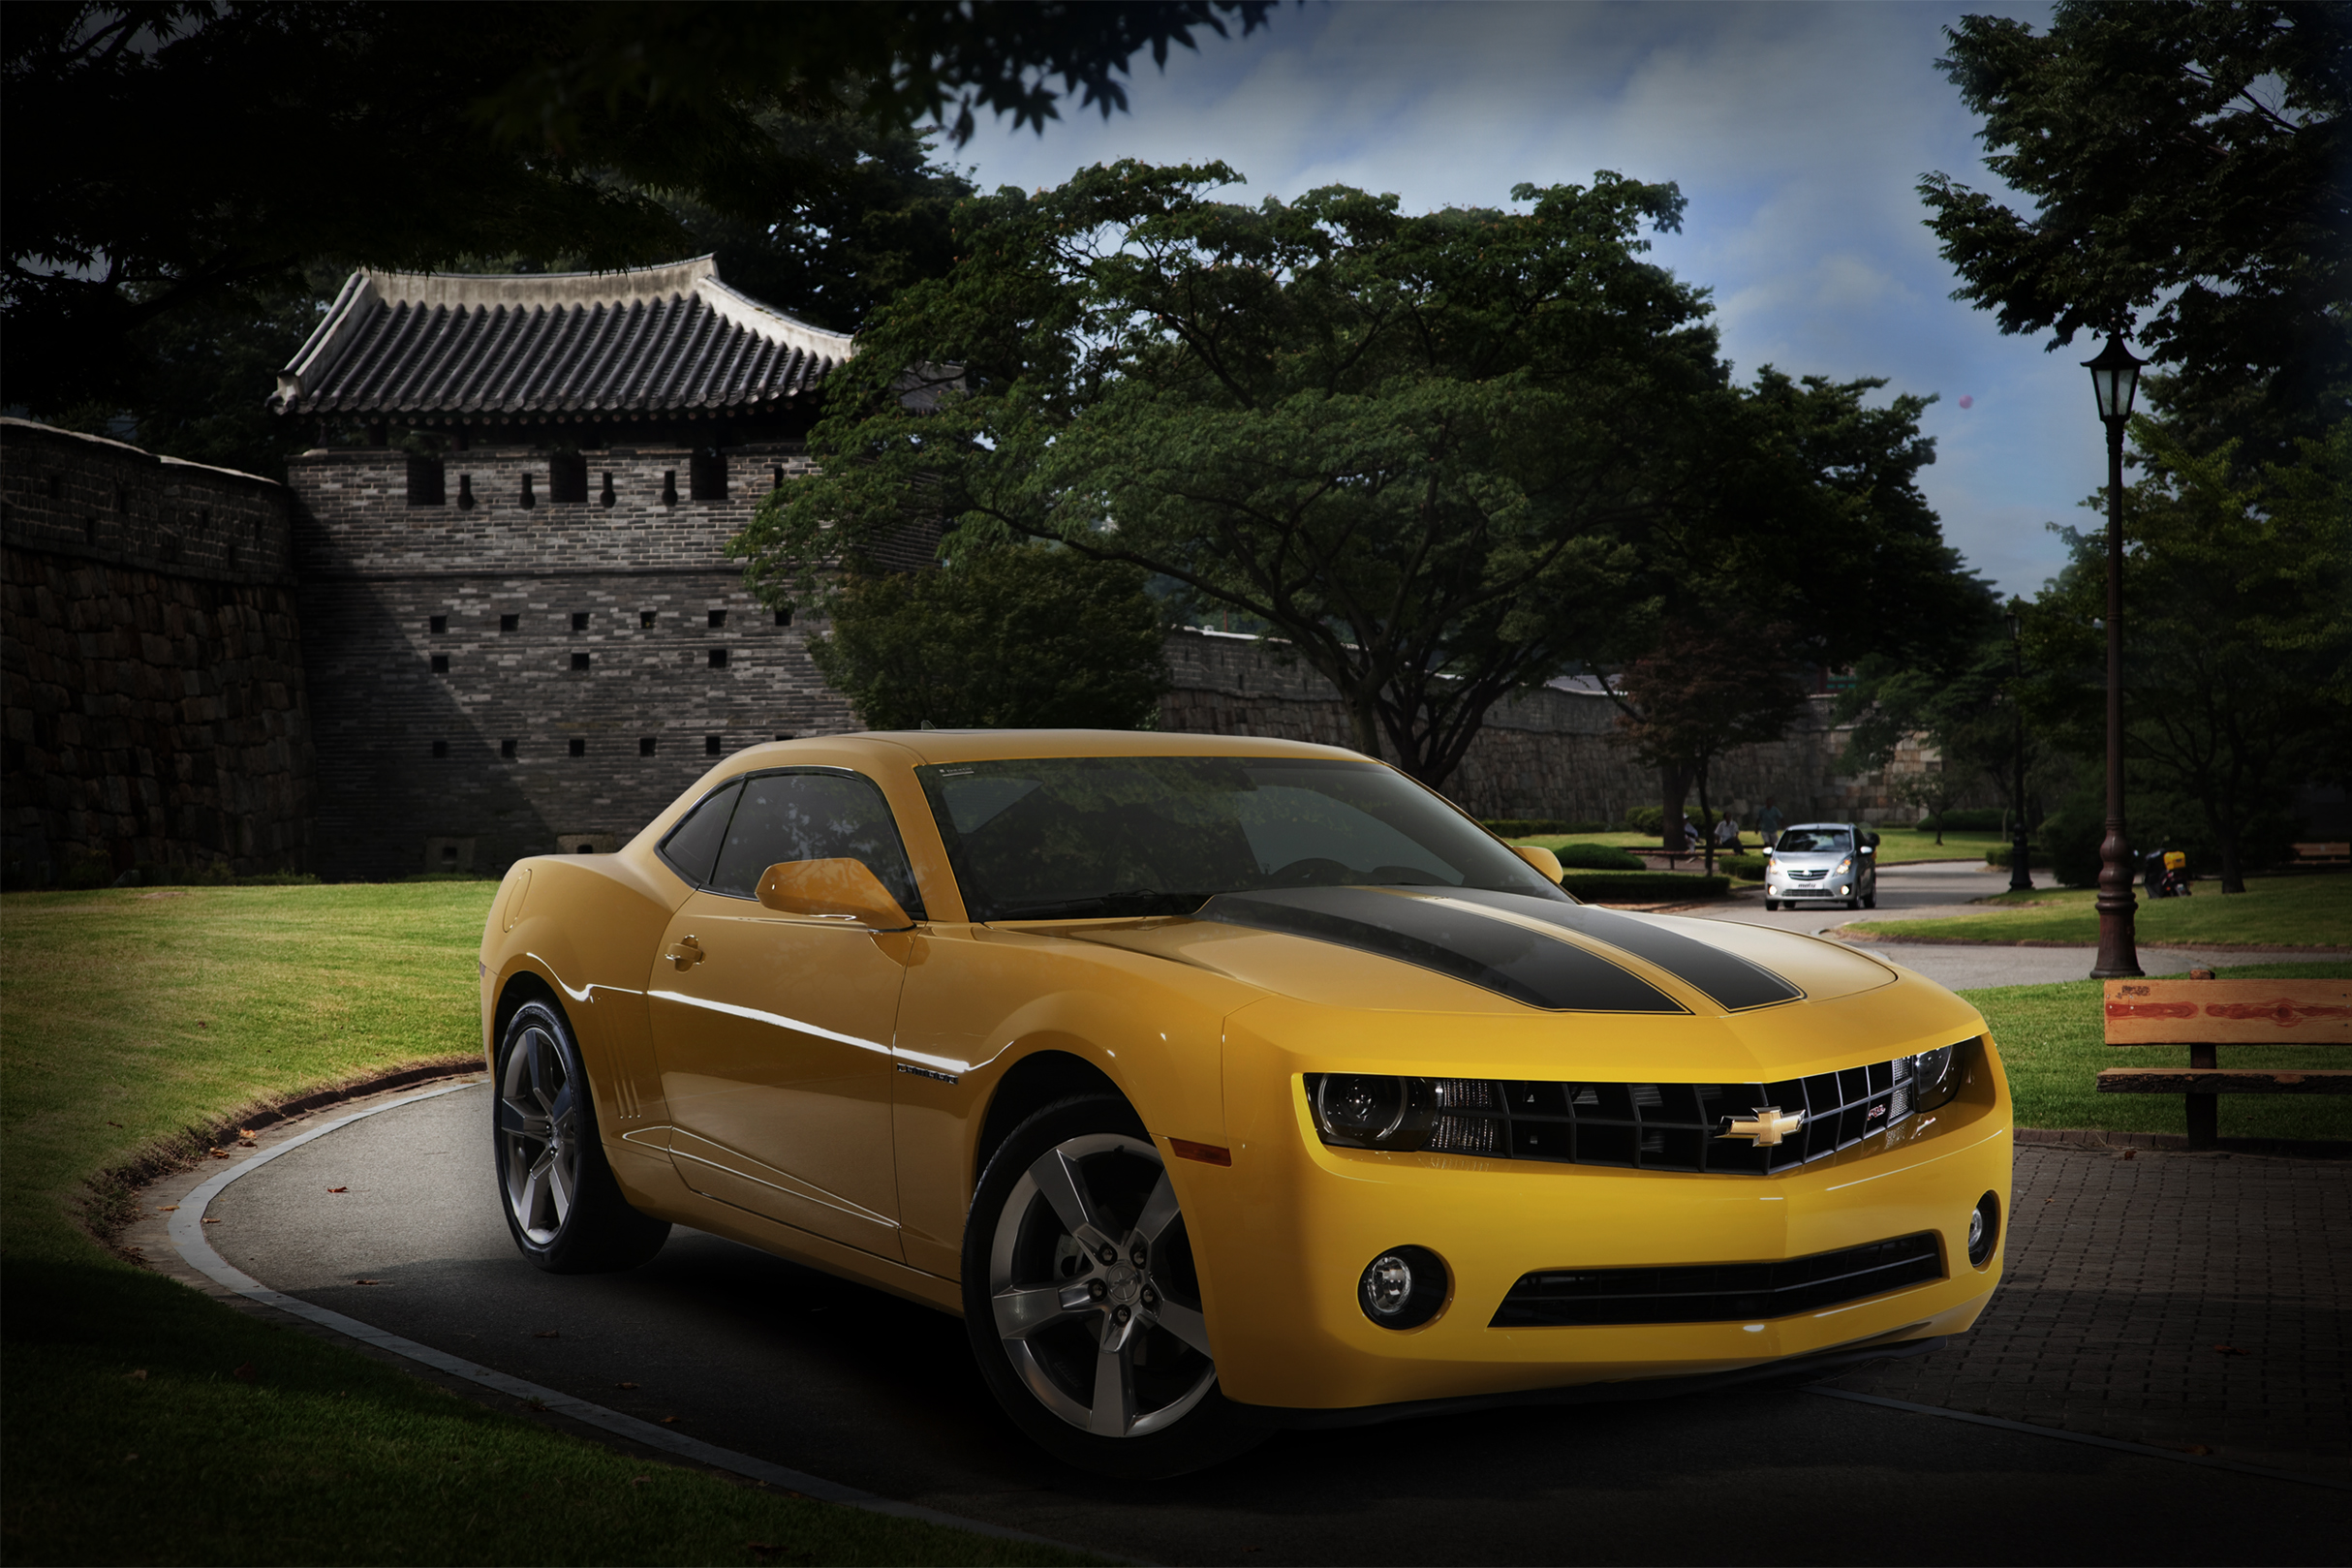 Chevrolet Camaro in Korea.